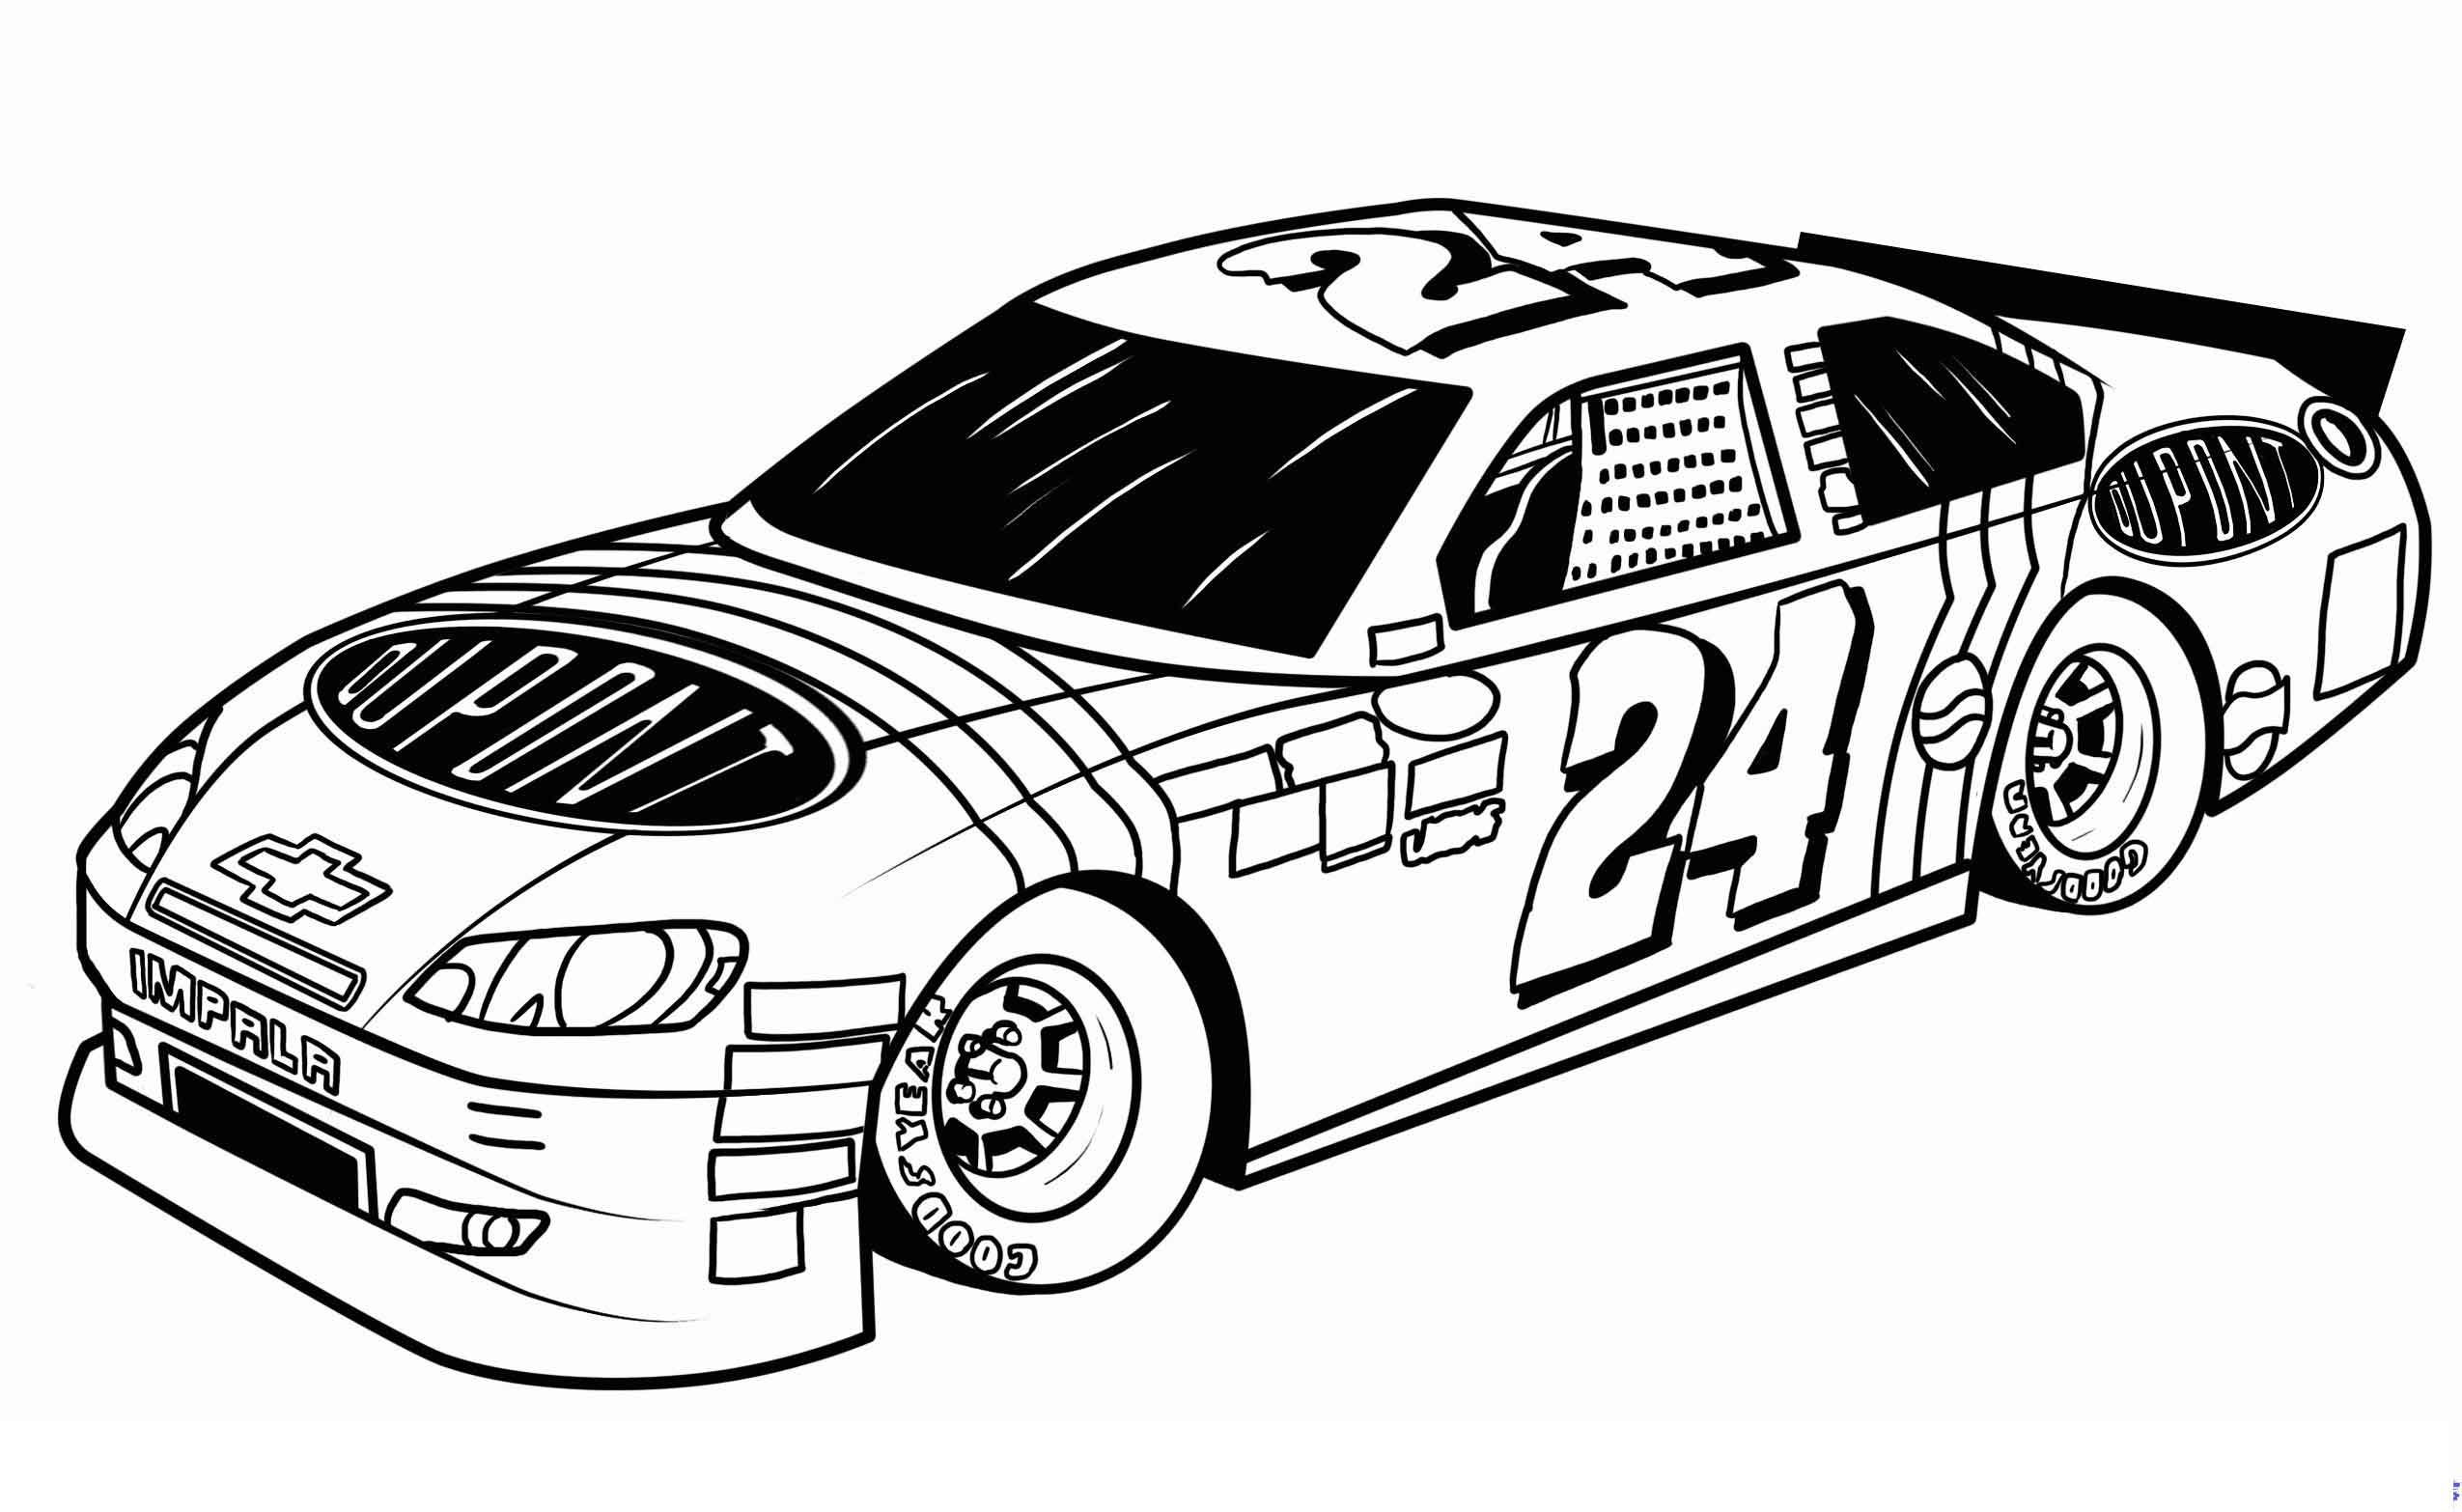 racecar coloring page indy car coloring pages coloring home page racecar coloring